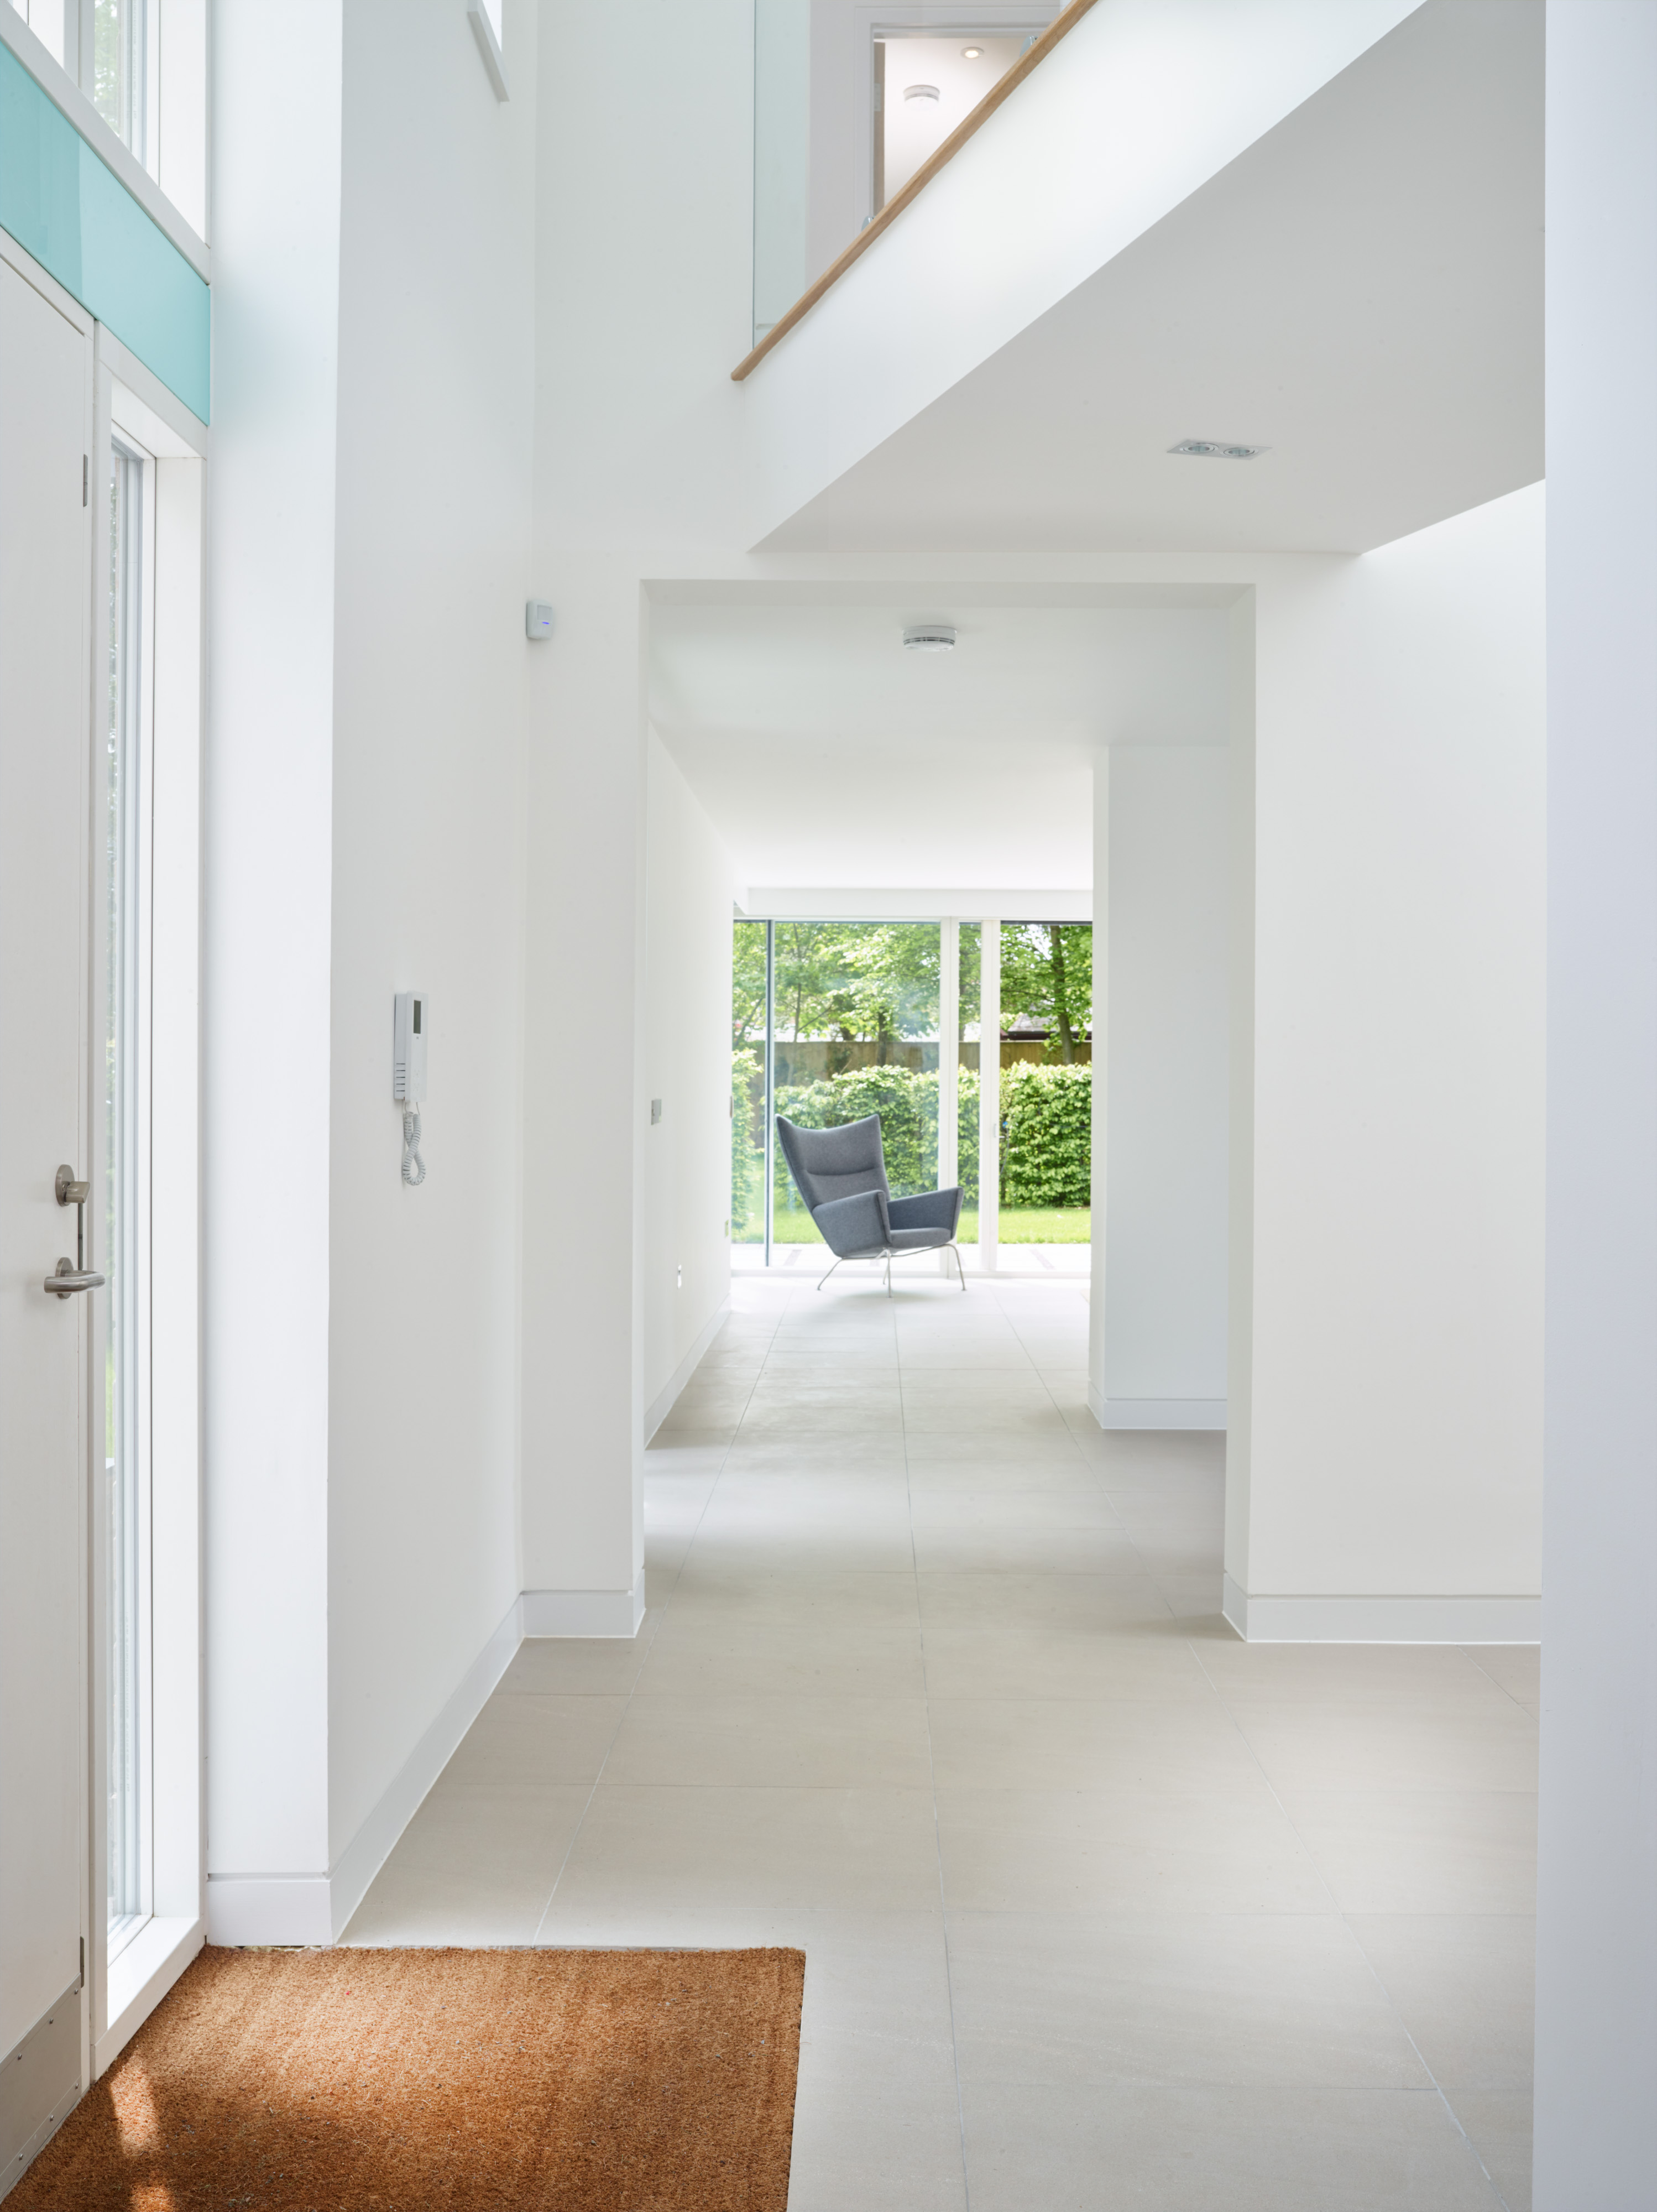 </p> <p>Find your ideal home design pro on designfor-me.com - get matched and see who's interested in your home project. Click image to see more inspiration from our design pros</p> <p>Design by Allister, architect from Vale of White Horse, South East</p> <p>#architecture #homedesign #modernhomes #homeinspiration #minimalistarchitecture #minimalistdecor #minimalistdesign #miminalism #hallways #hallwaydesign #hallwayinspiration #hallwayideas #hallwaydesignideas </p> <p>